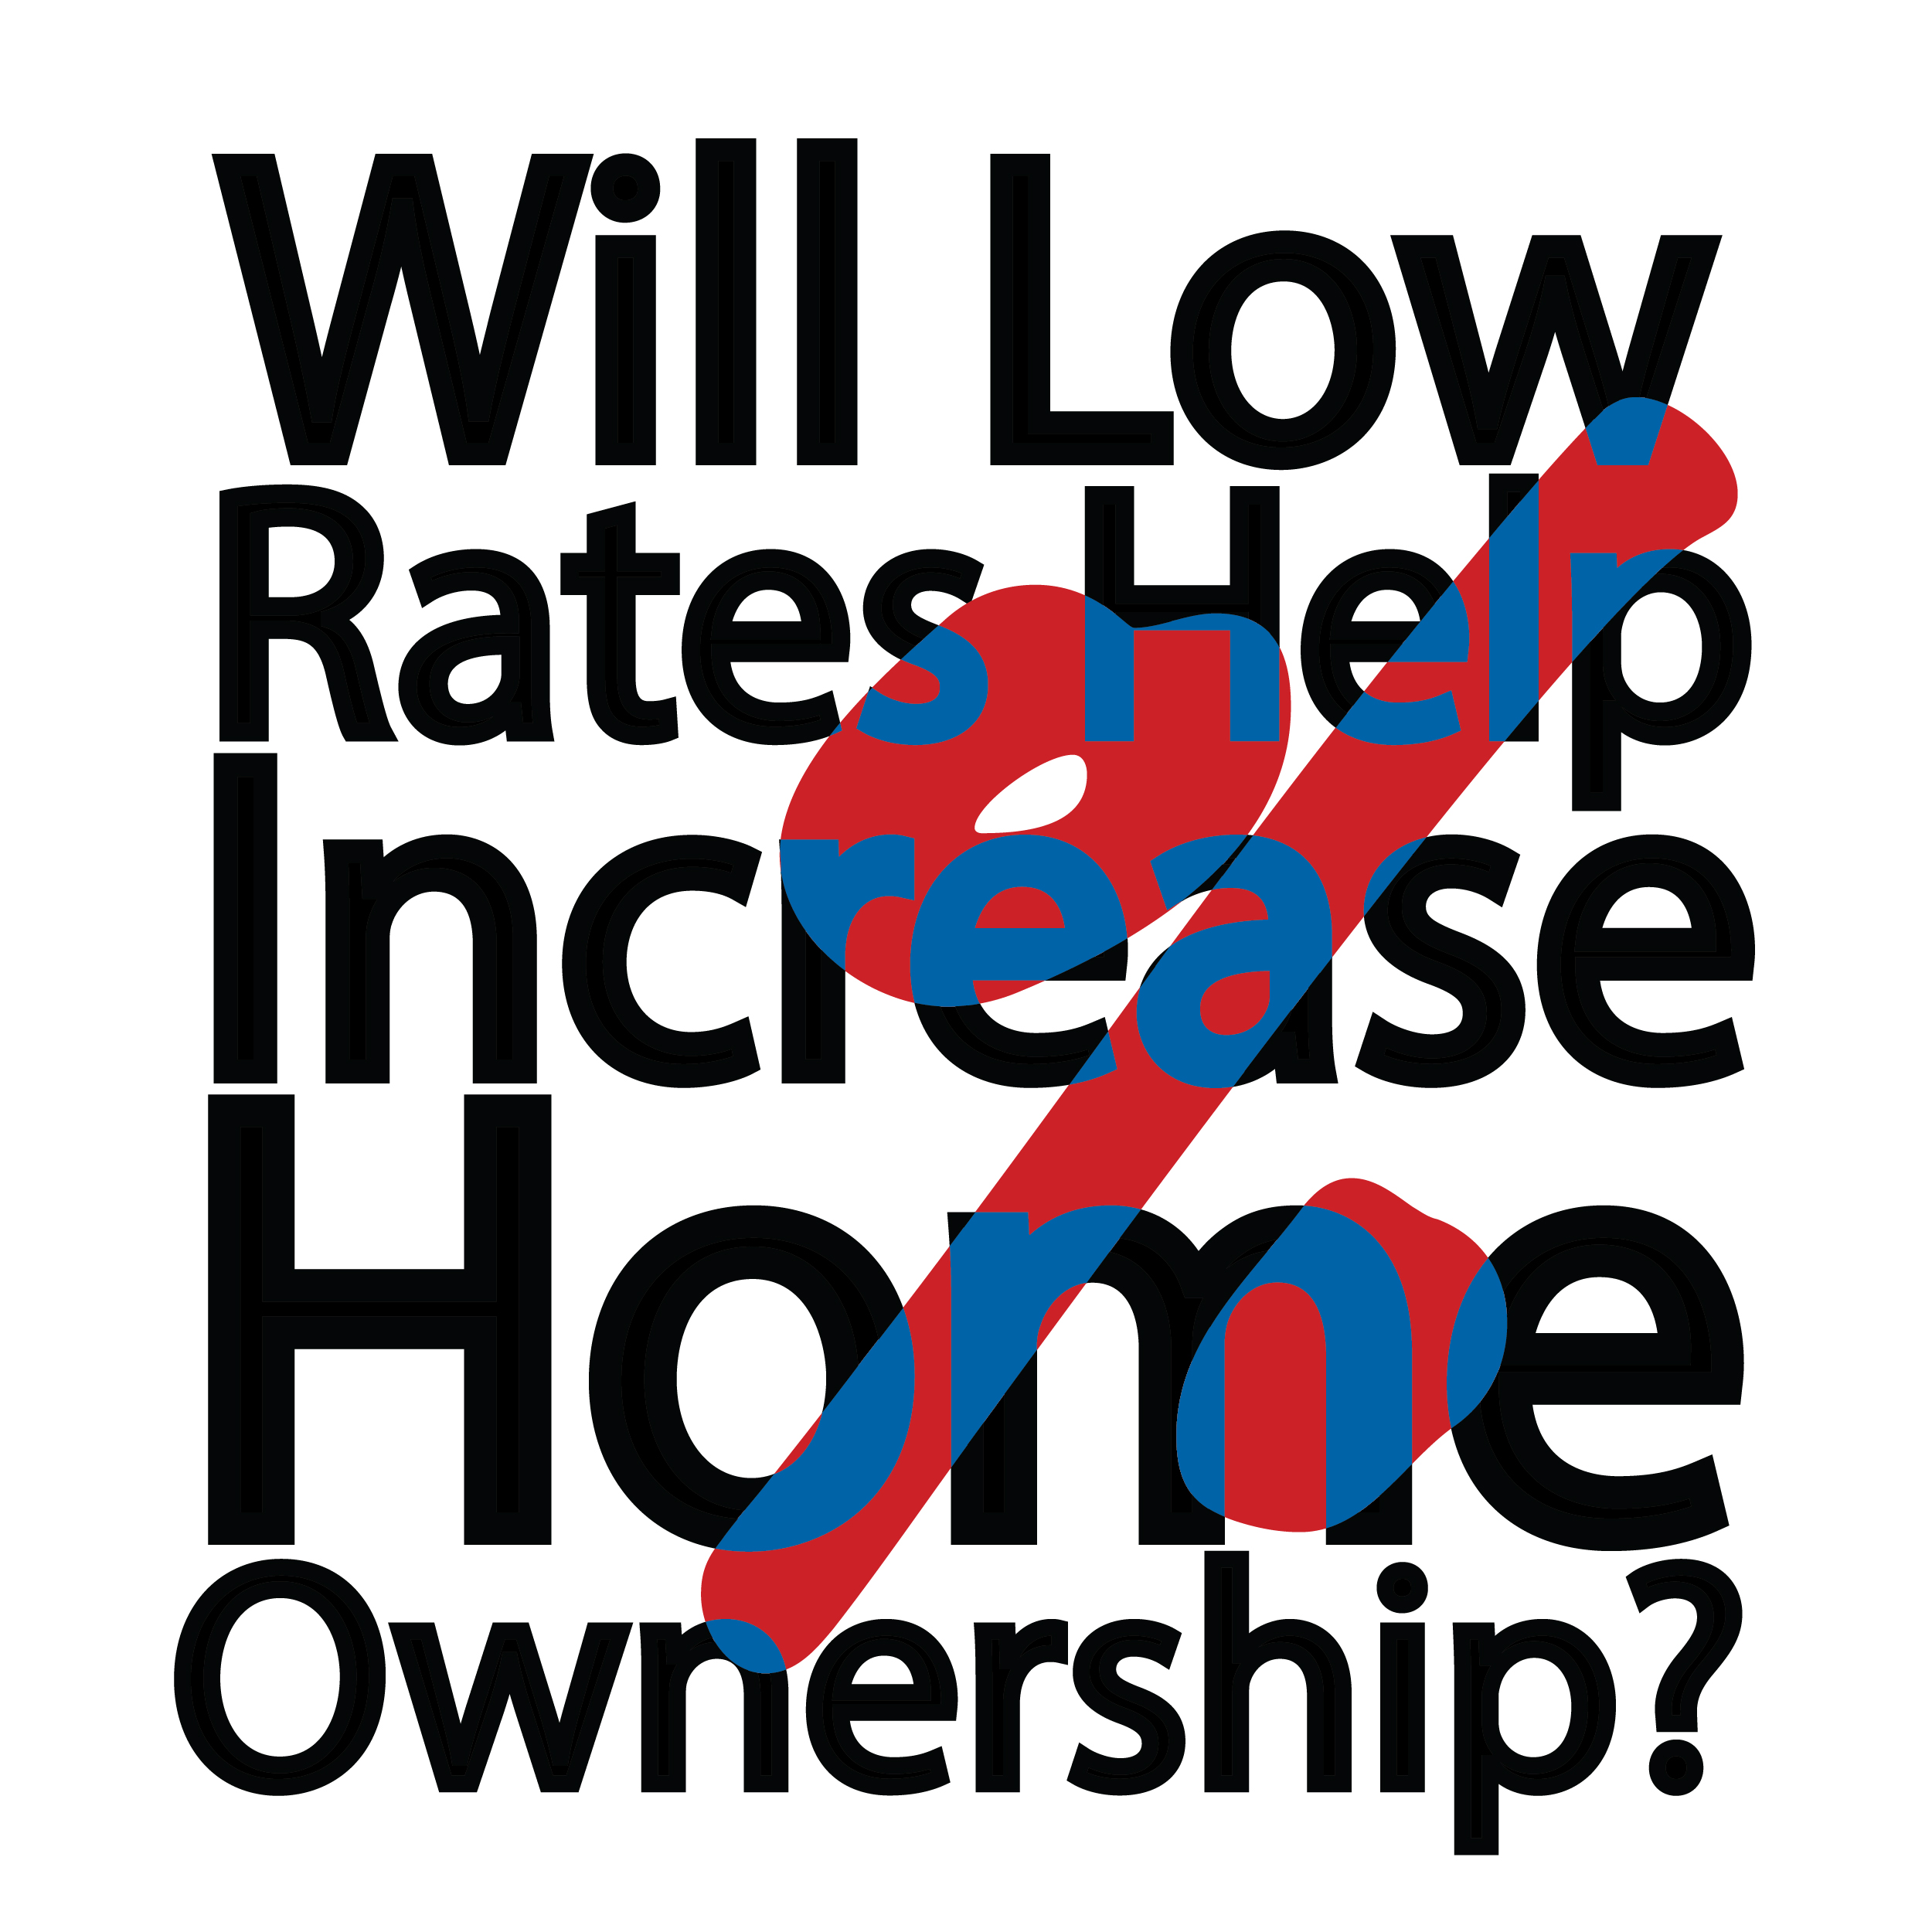 Low_rates_increase_home_ownership-01